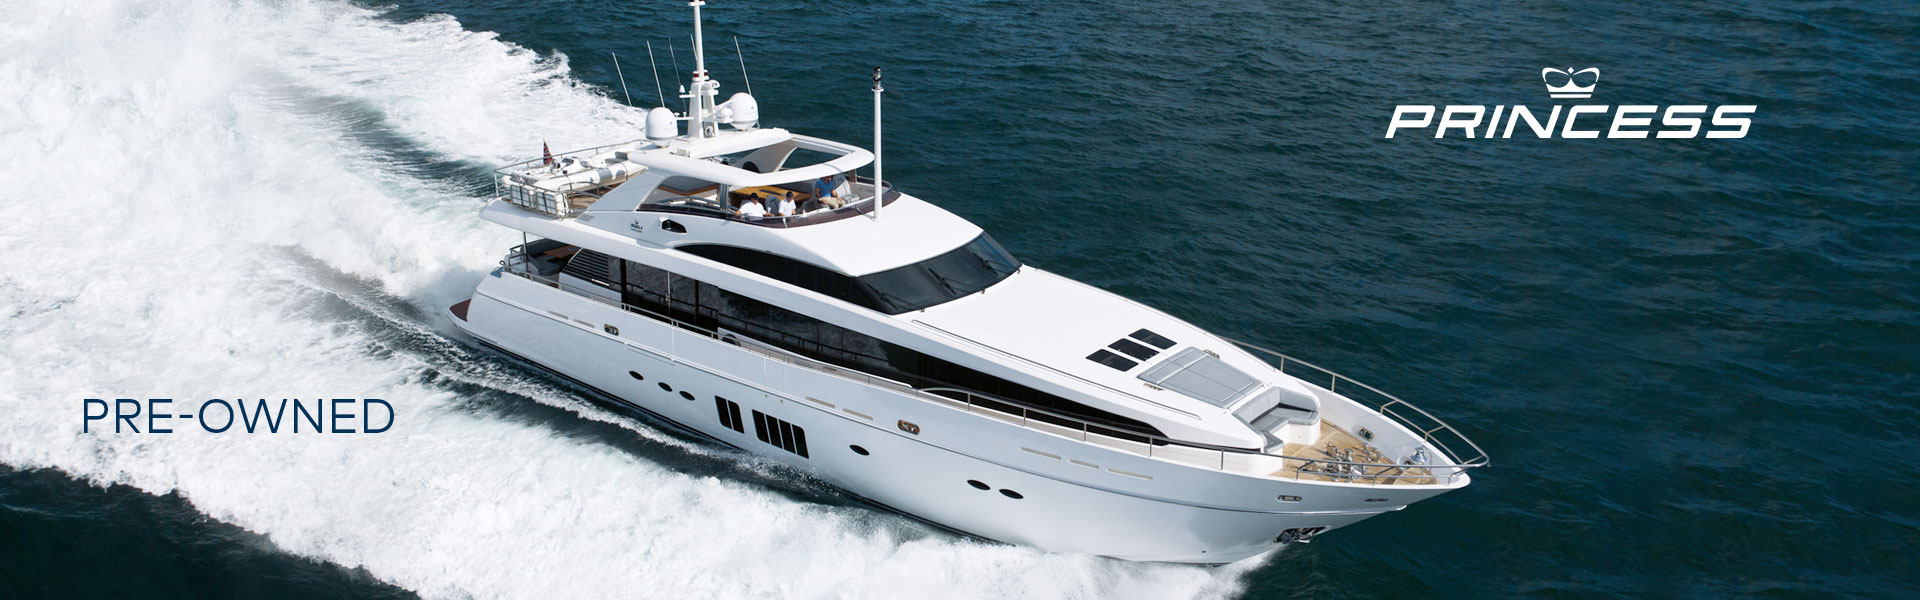 Asias Premier Provider Of A Luxury Yachting Experience